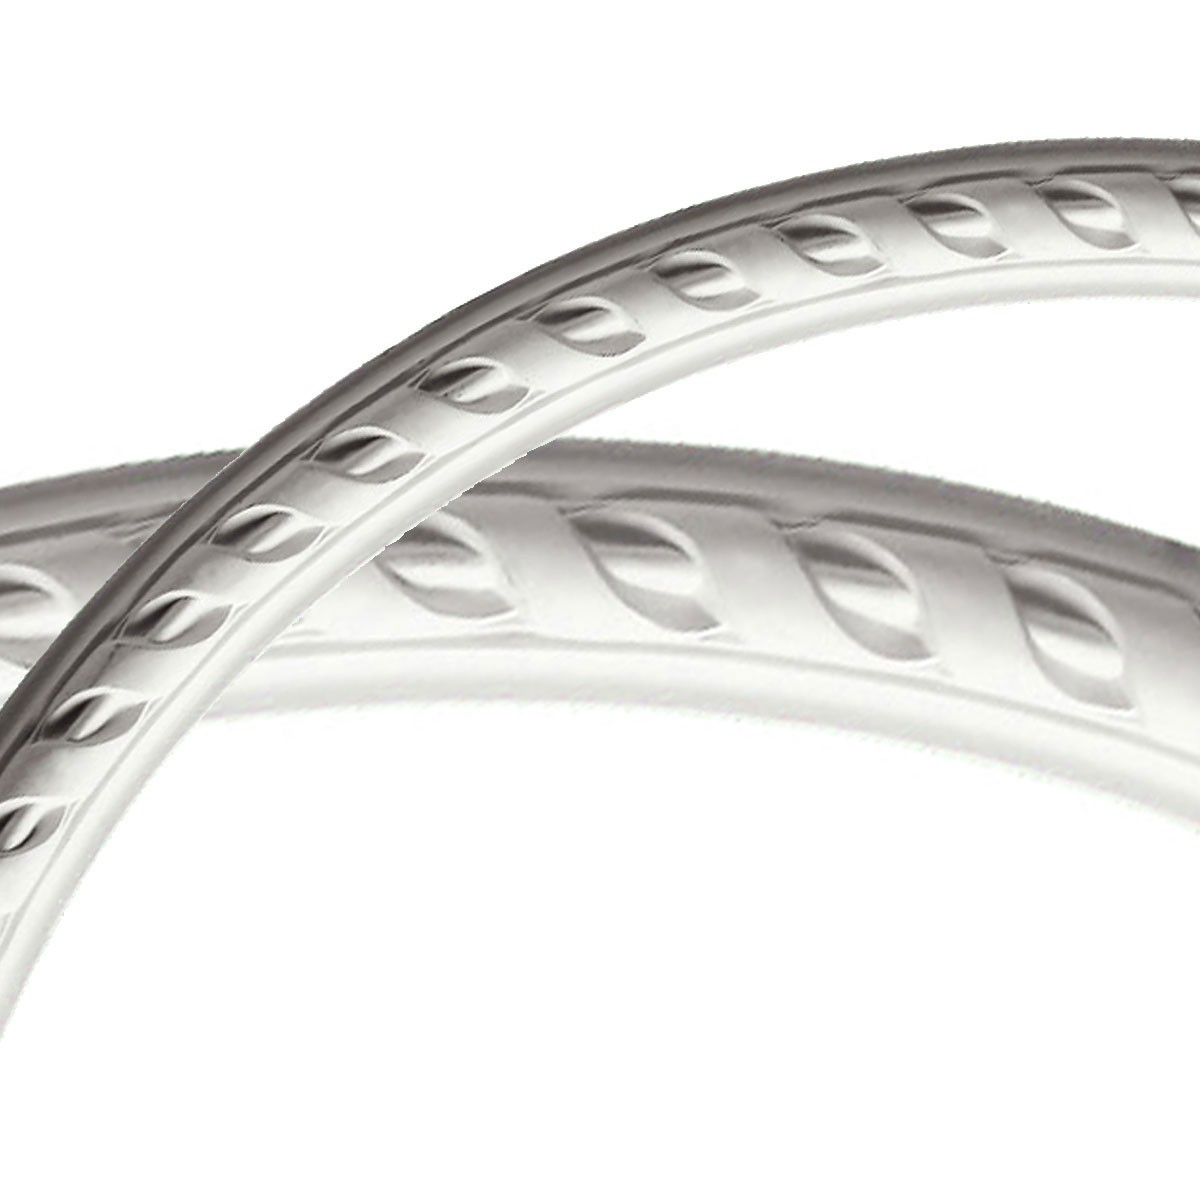 """EM-CR15ME - 26 3/4""""OD x 23 1/2""""ID x 1 5/8""""W x 3/4""""P Medway Ceiling Ring (1/4 of complete circle)"""